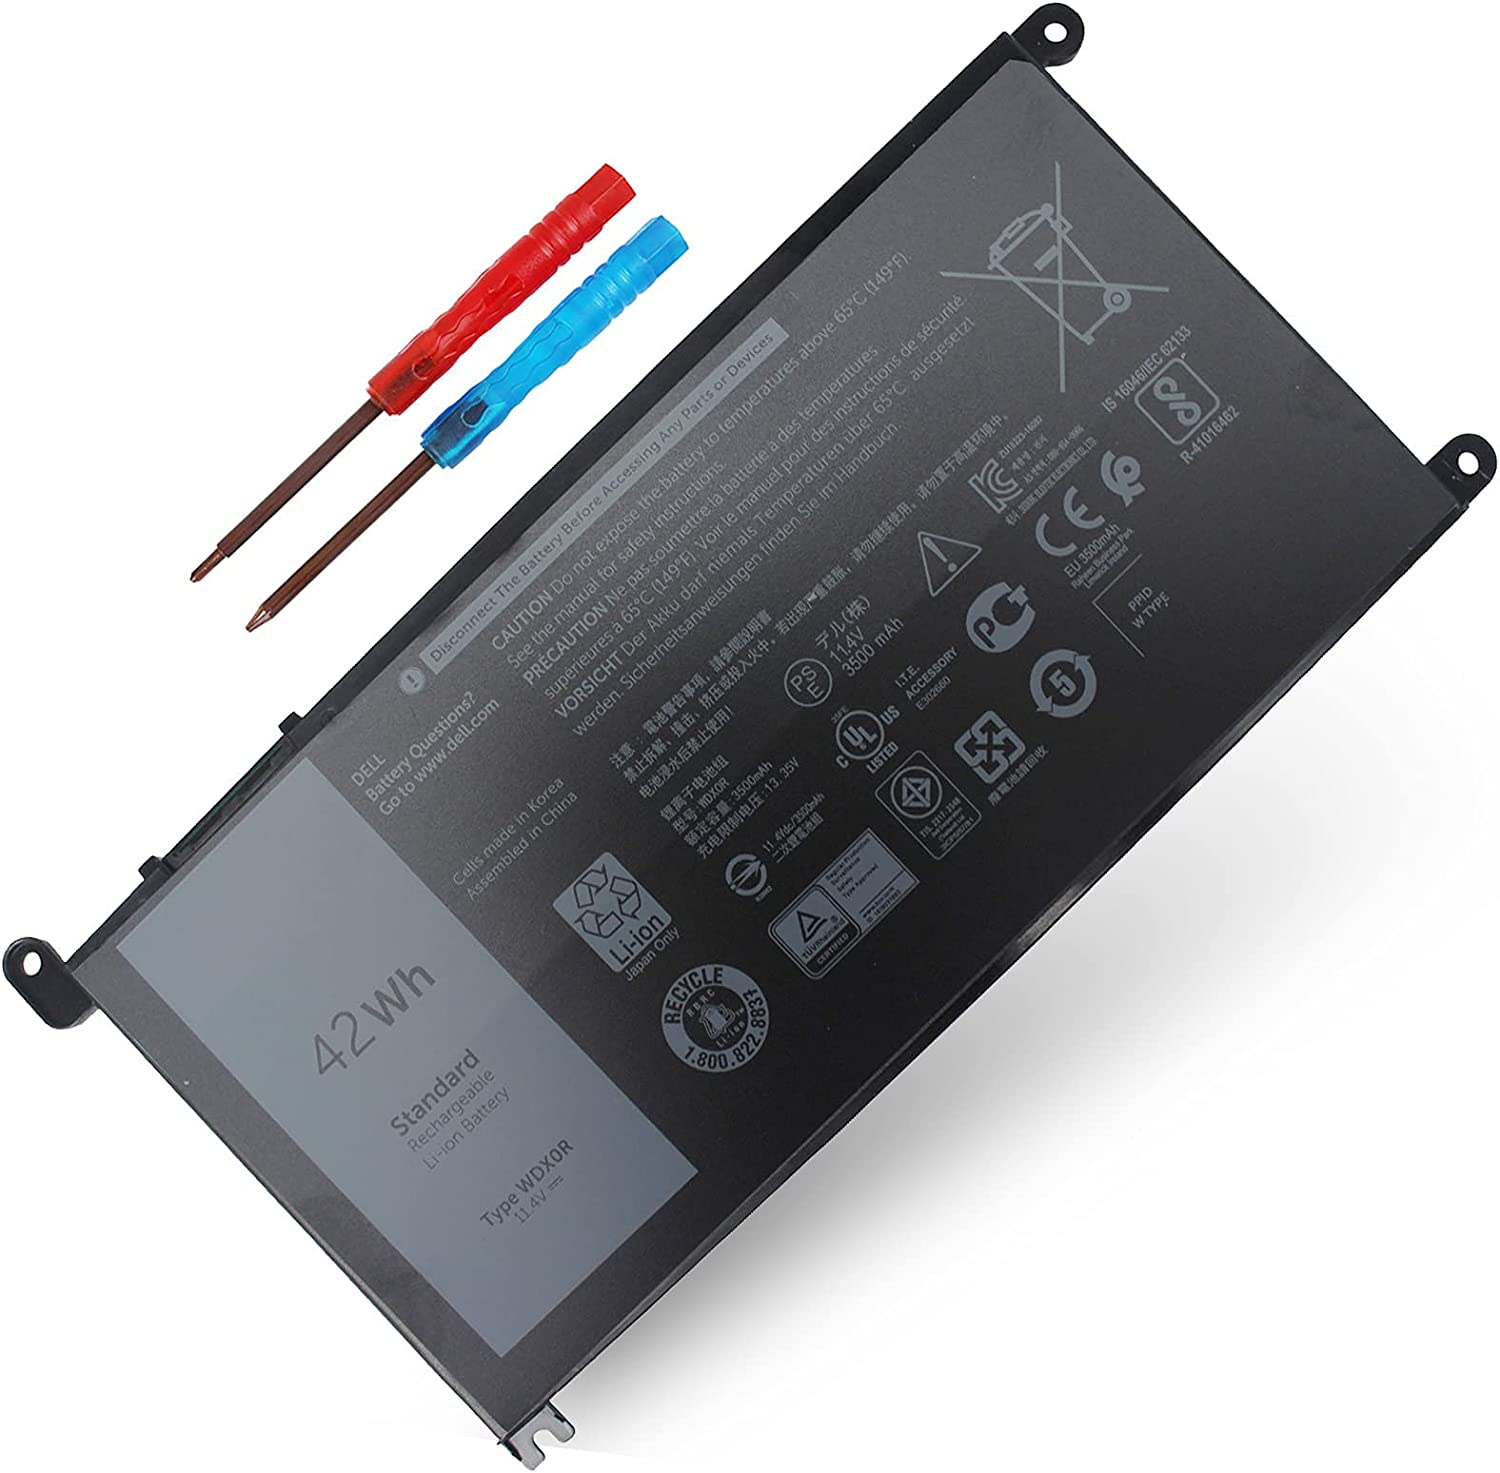 WDX0R Laptop Battery for DELL Inspiron 7378 Max 72% OFF 5378 5368 53 13 Indefinitely